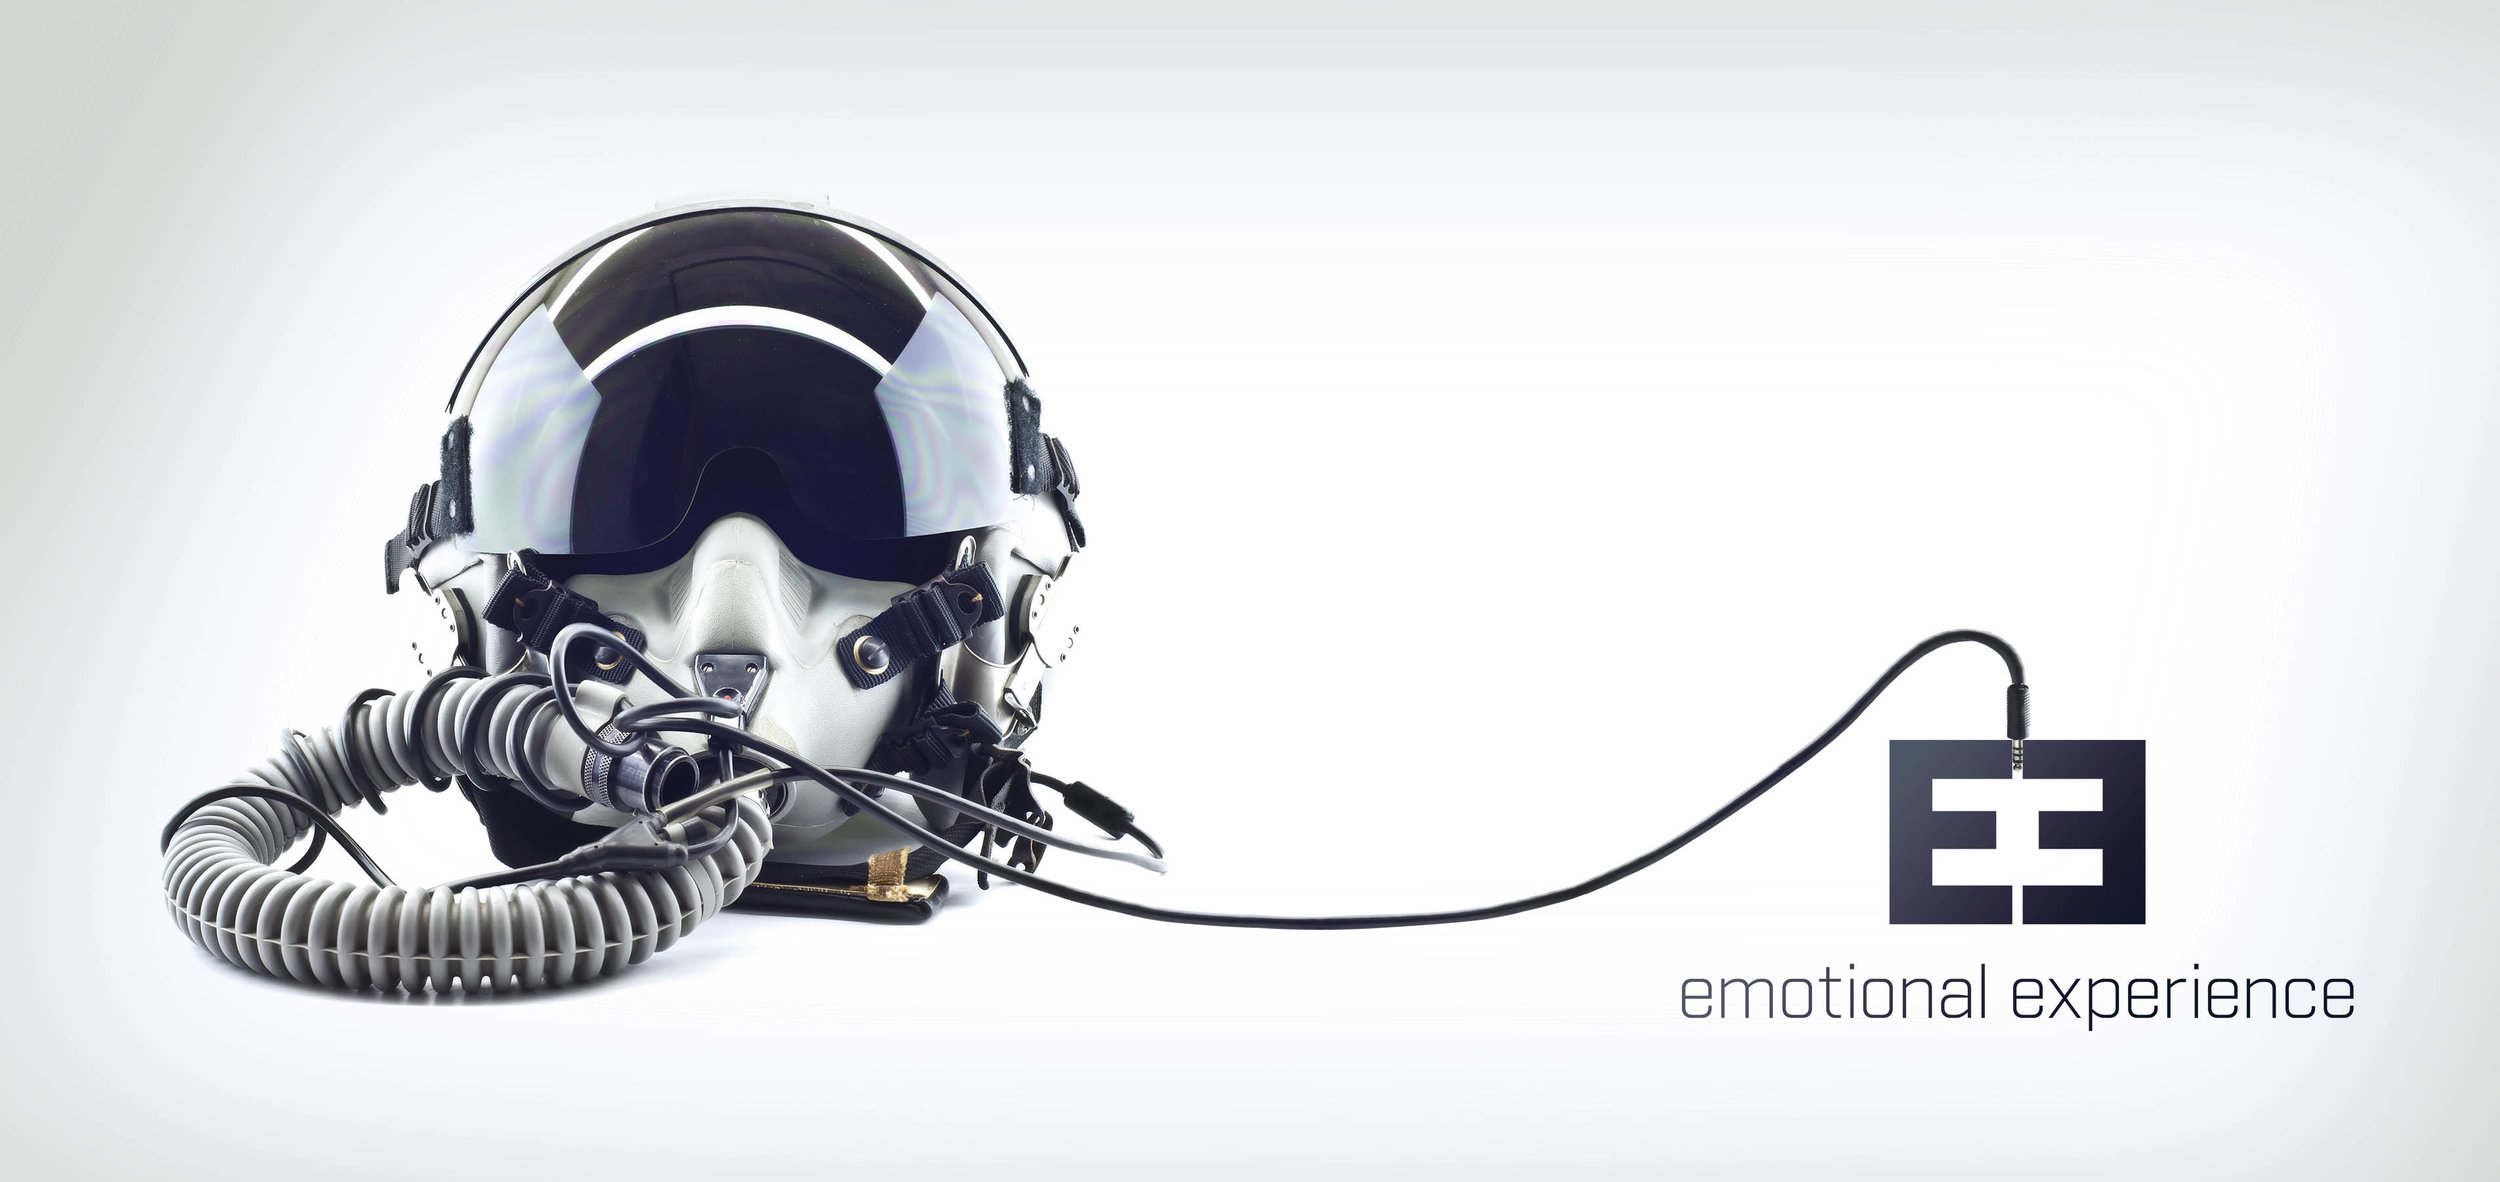 Iphone_Helm_Pilot.jpg